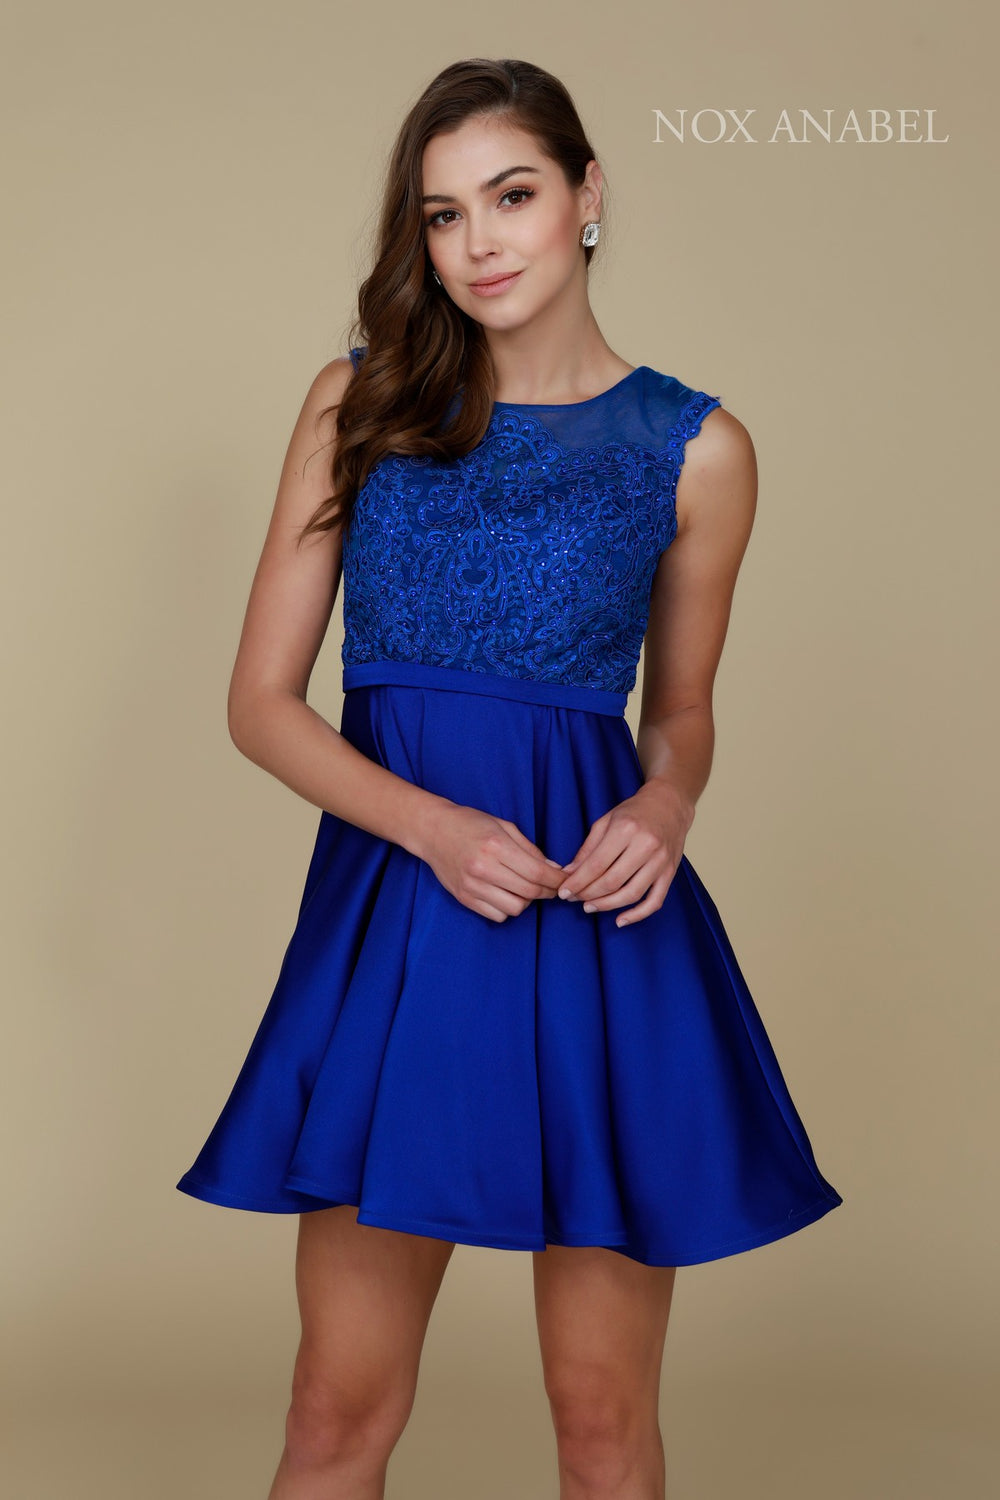 JEWEL ILLUSION NECKLINE WITH LACE EMBROIDERED SHORT PARTY DRESS 6288 BY NARIANNA